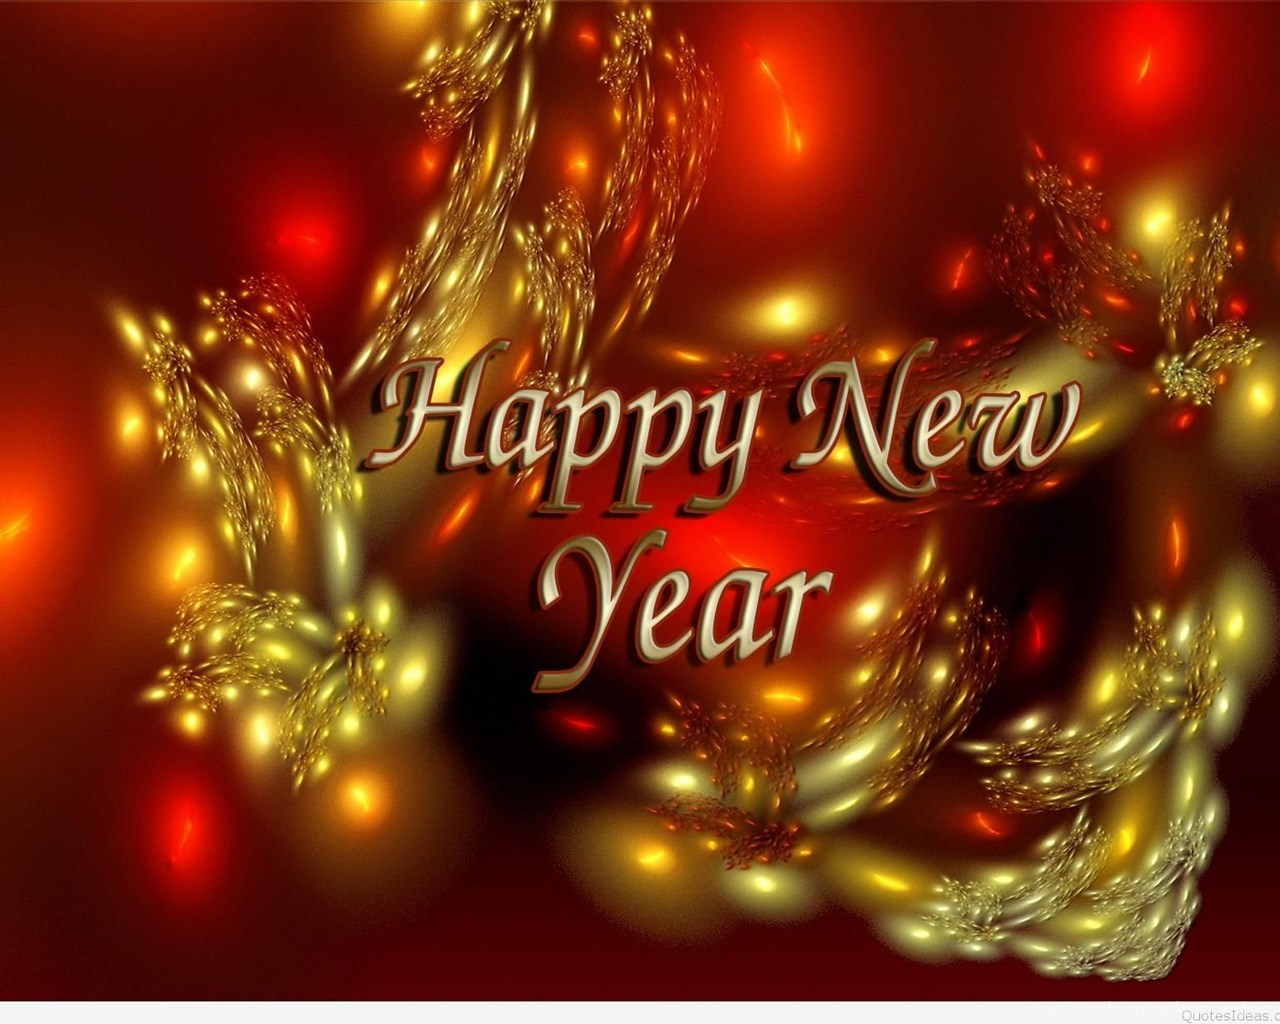 Happy New Year Animated Wallpapers Hd 2015 2016 Desktop Background